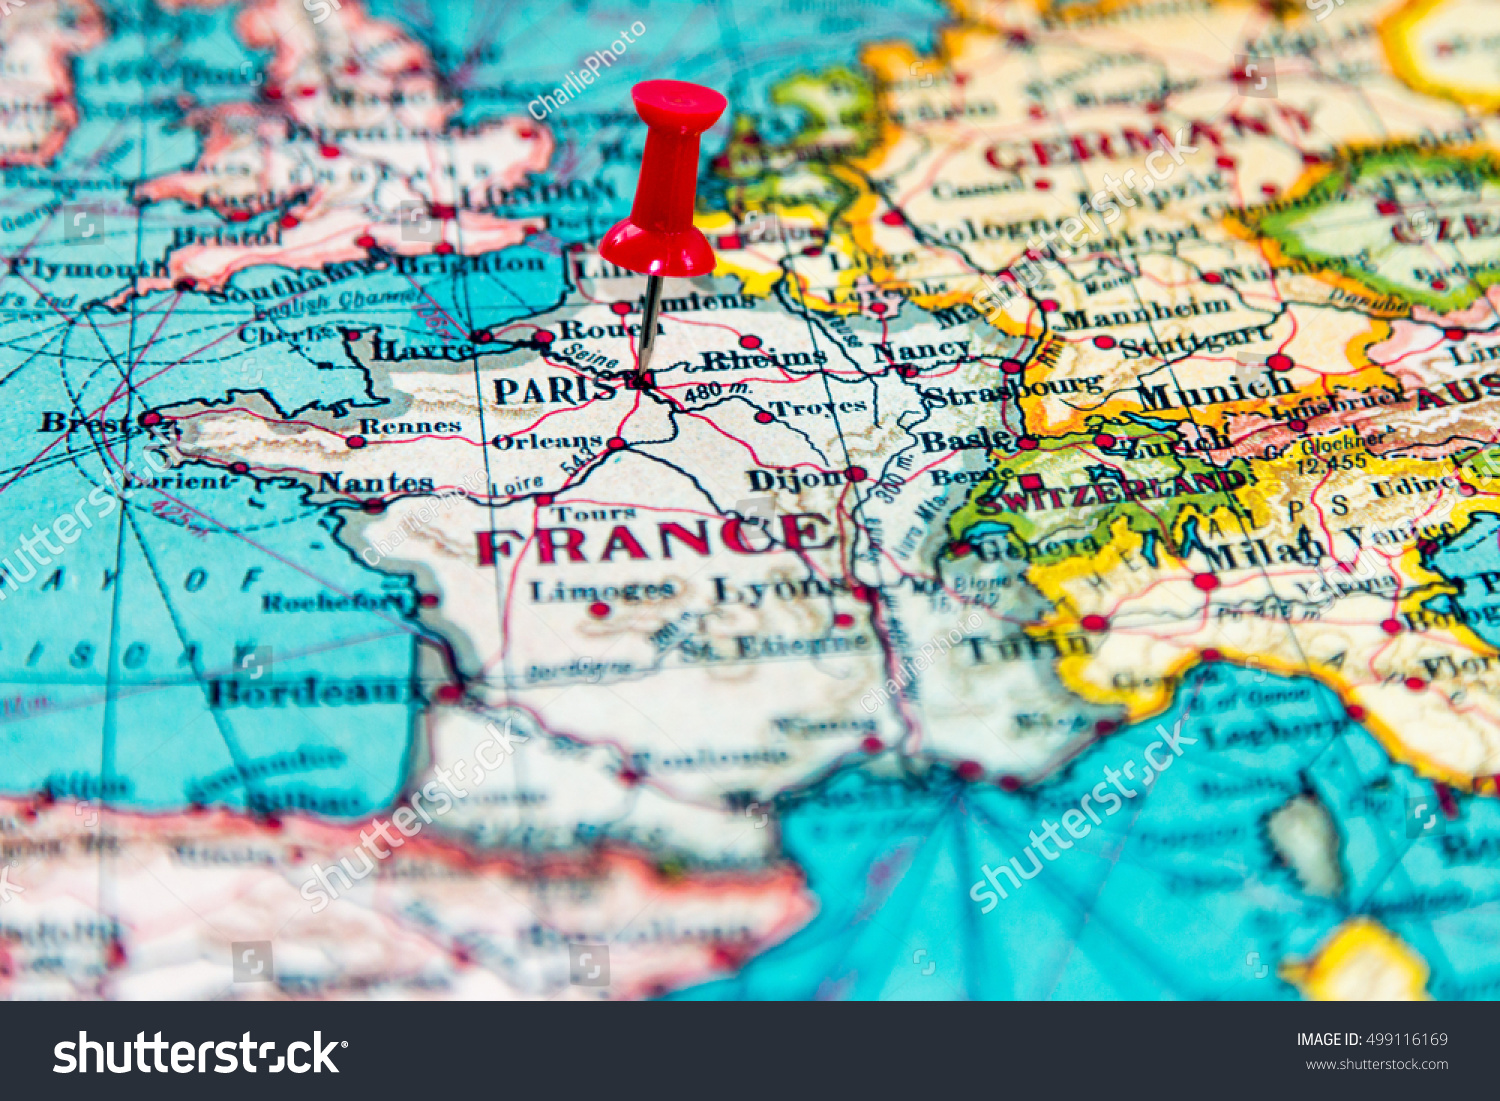 Paris France Pinned On Vintage Map Stock Photo Edit Now 499116169